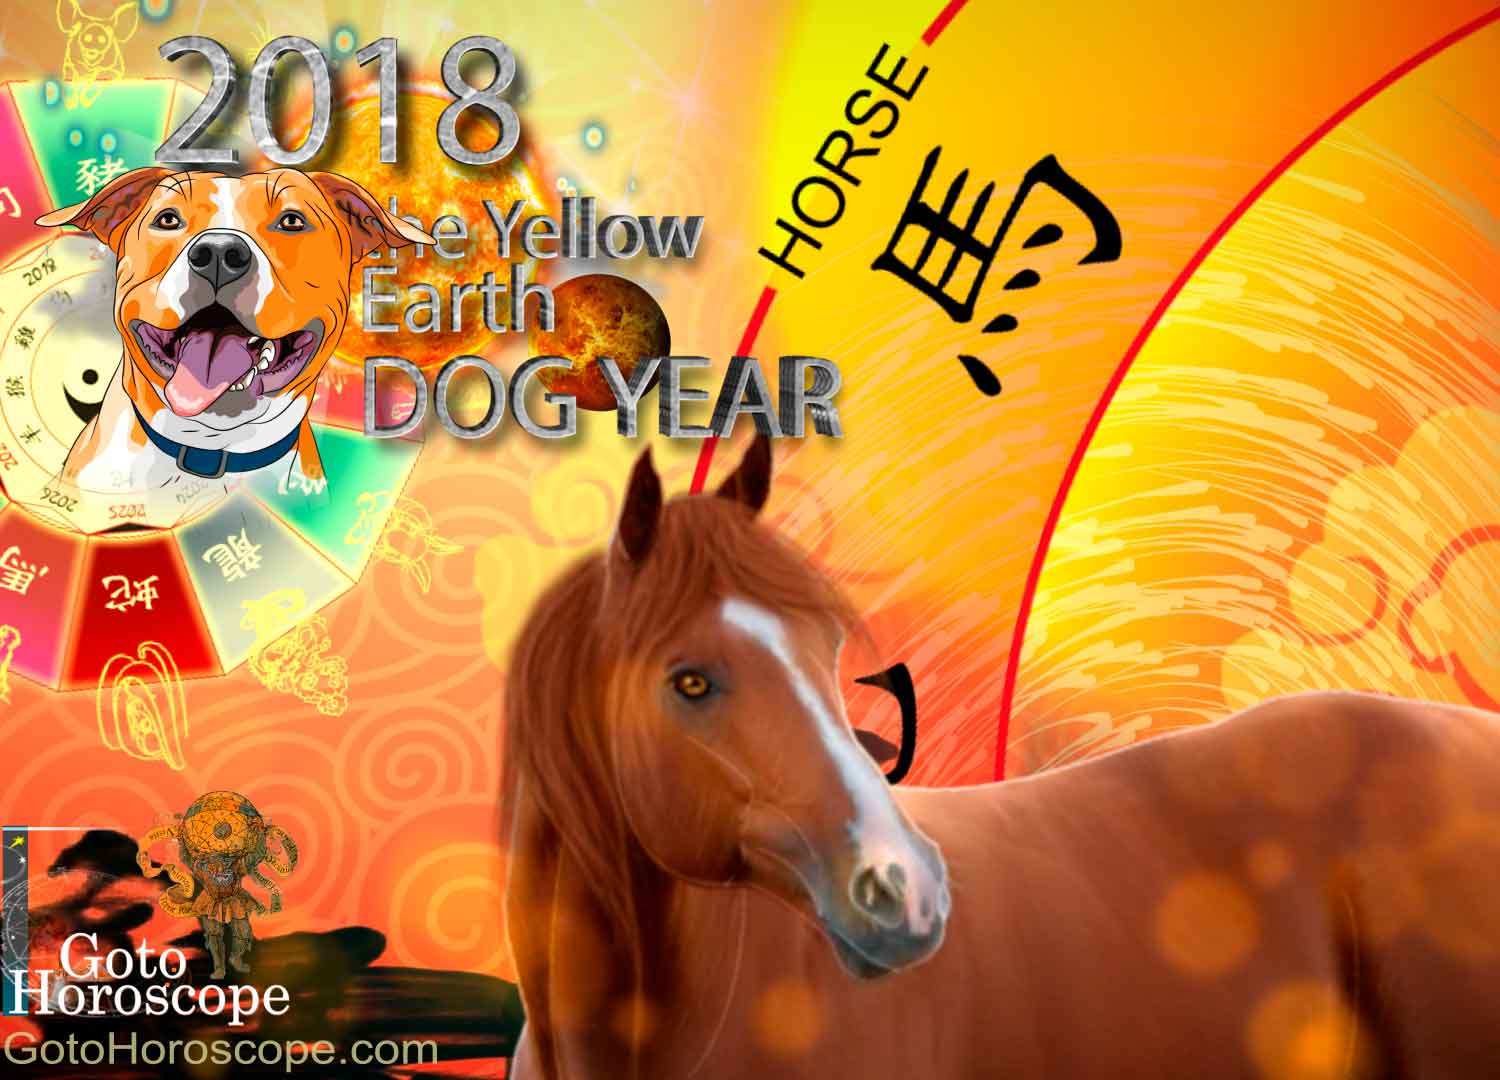 Horse 2018 Horoscope for the Yellow Earth Dog Year